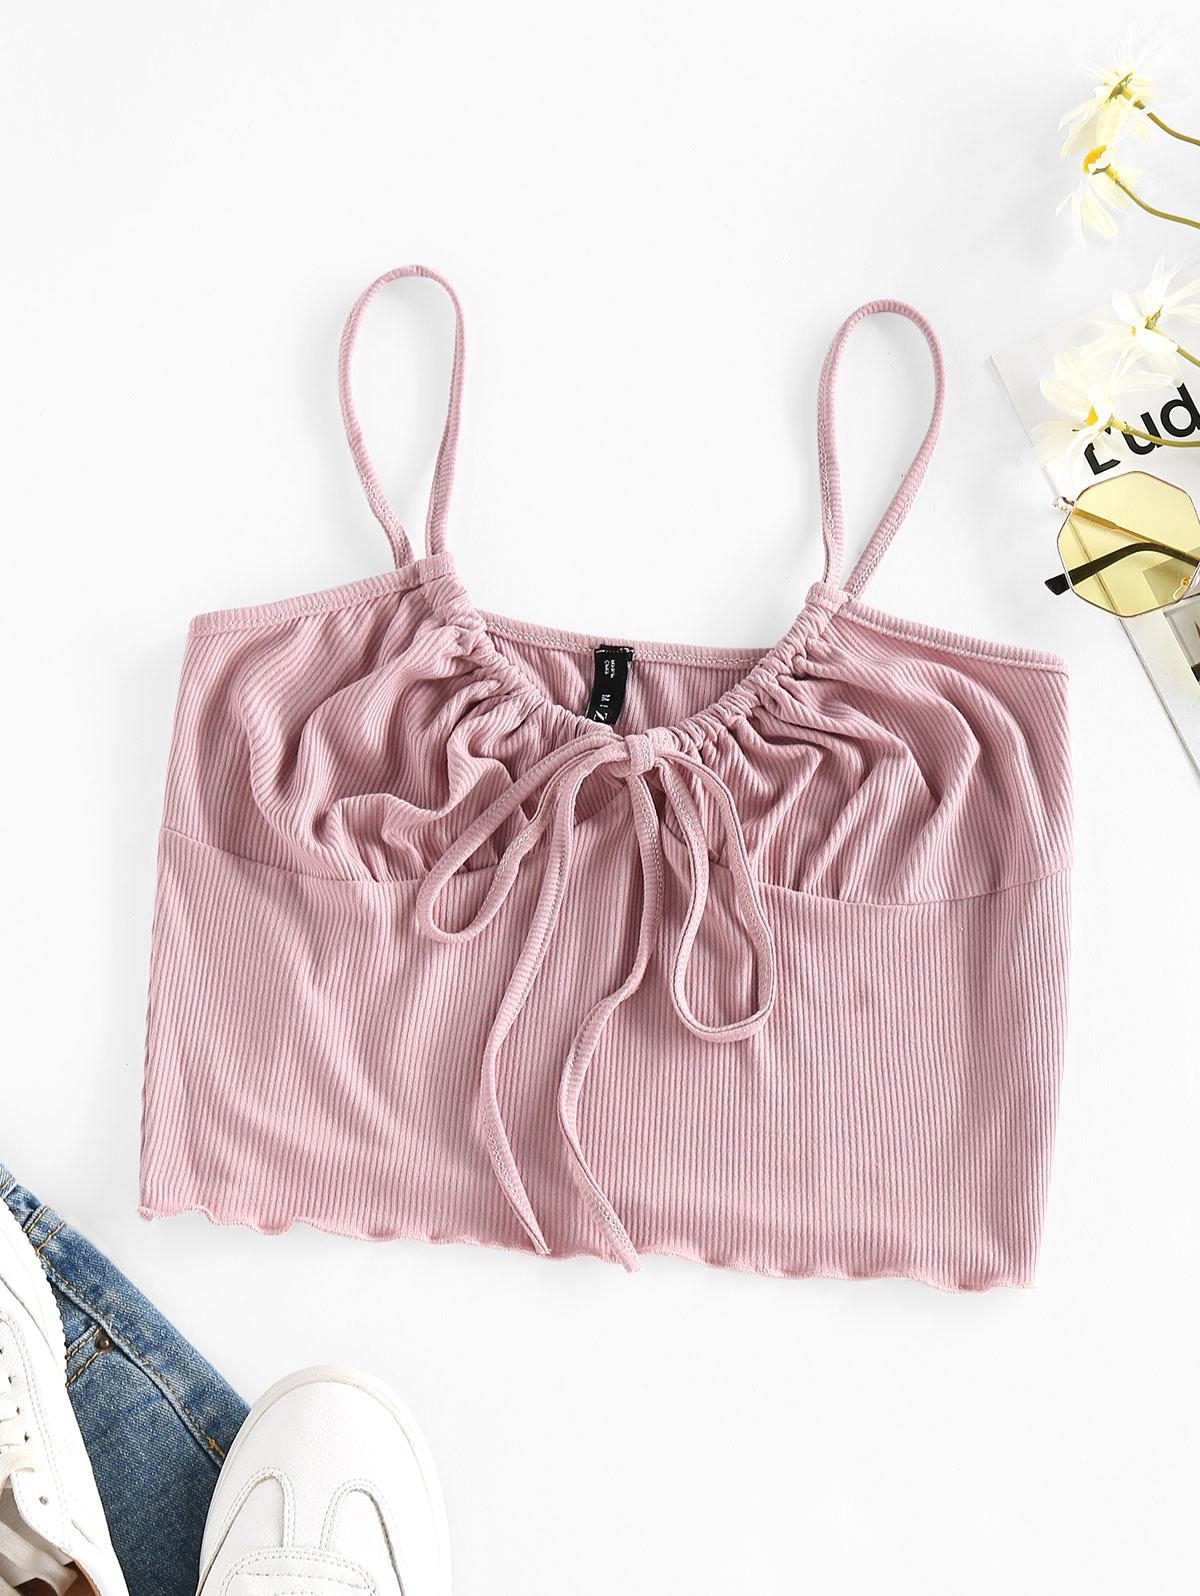 ZAFUL Tie Front Ribbed Bralette Top